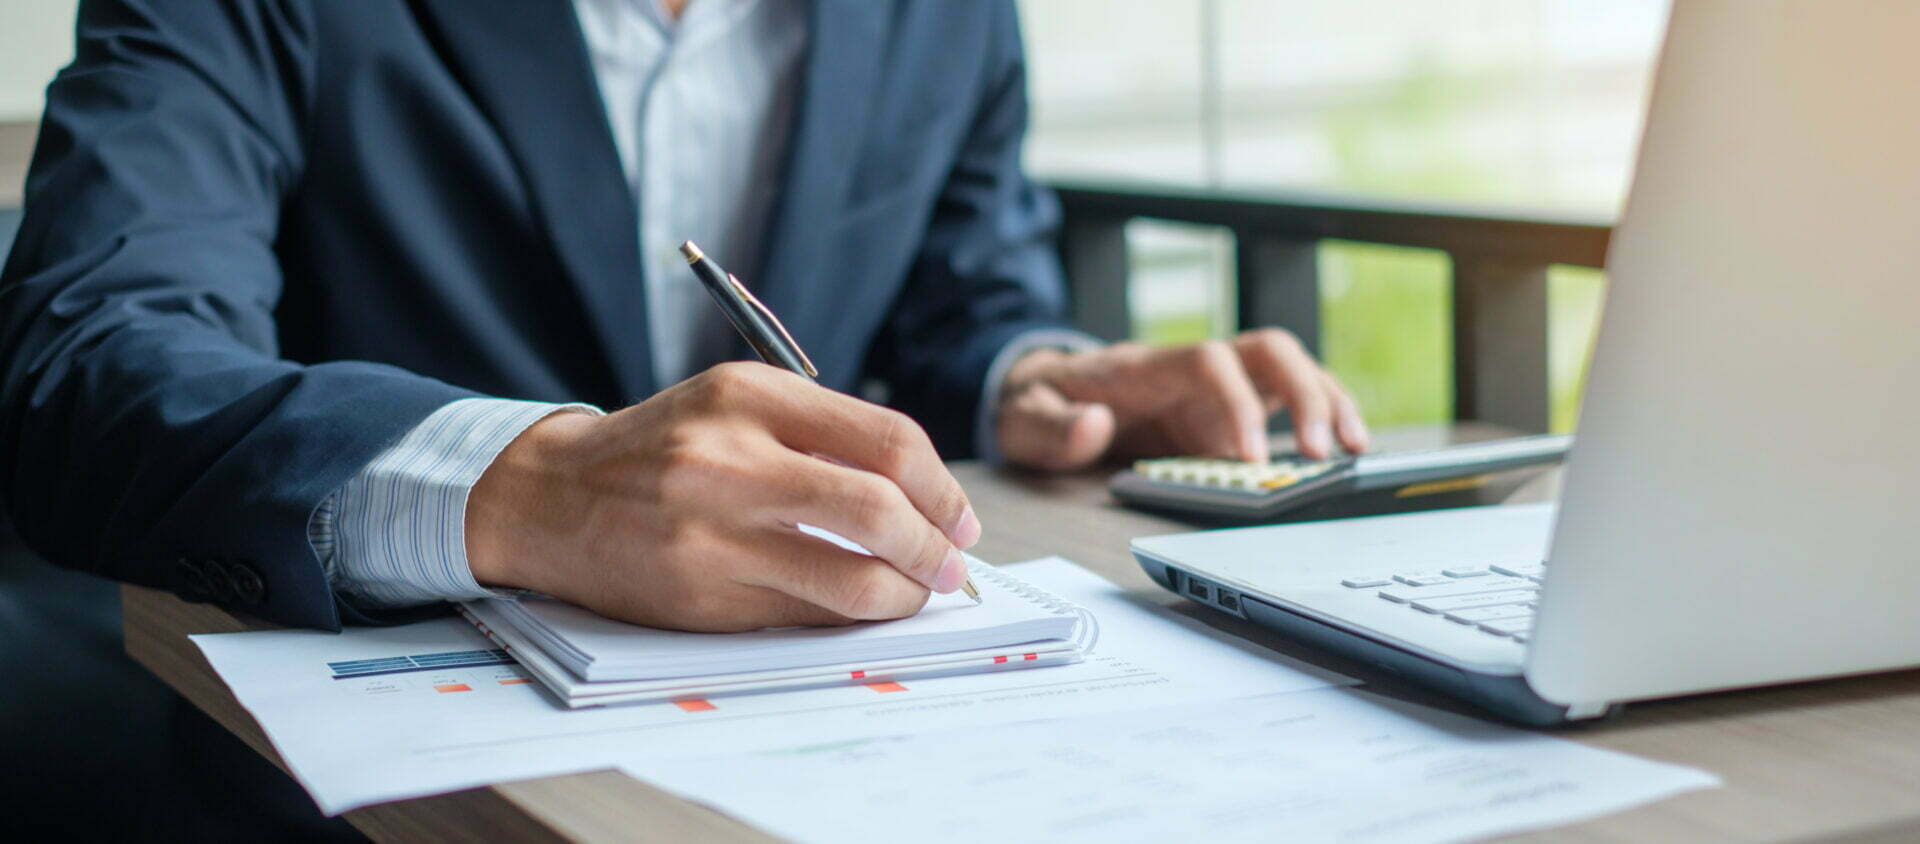 Professional Indemnity for Accountants